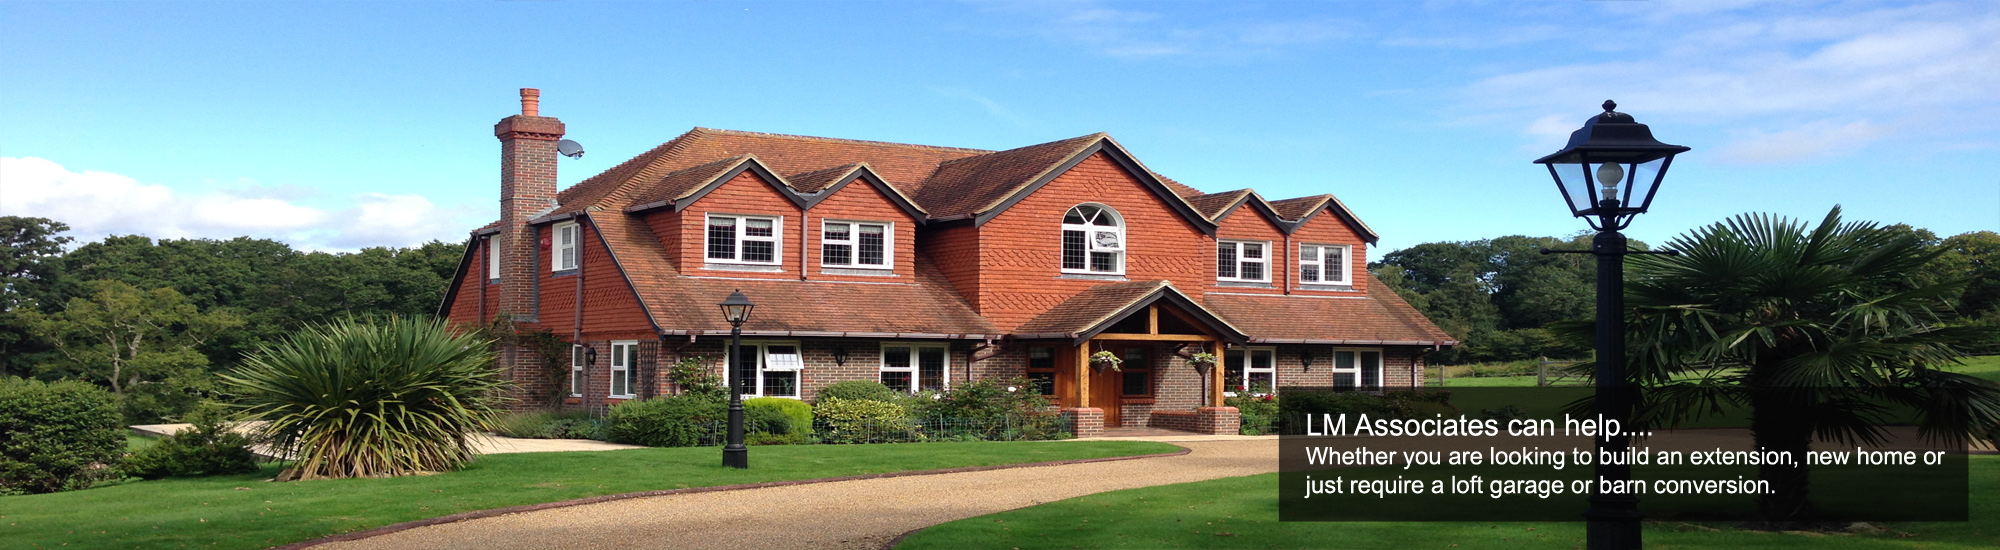 Architects in Sussex, Surry, Kent & Architectural Services